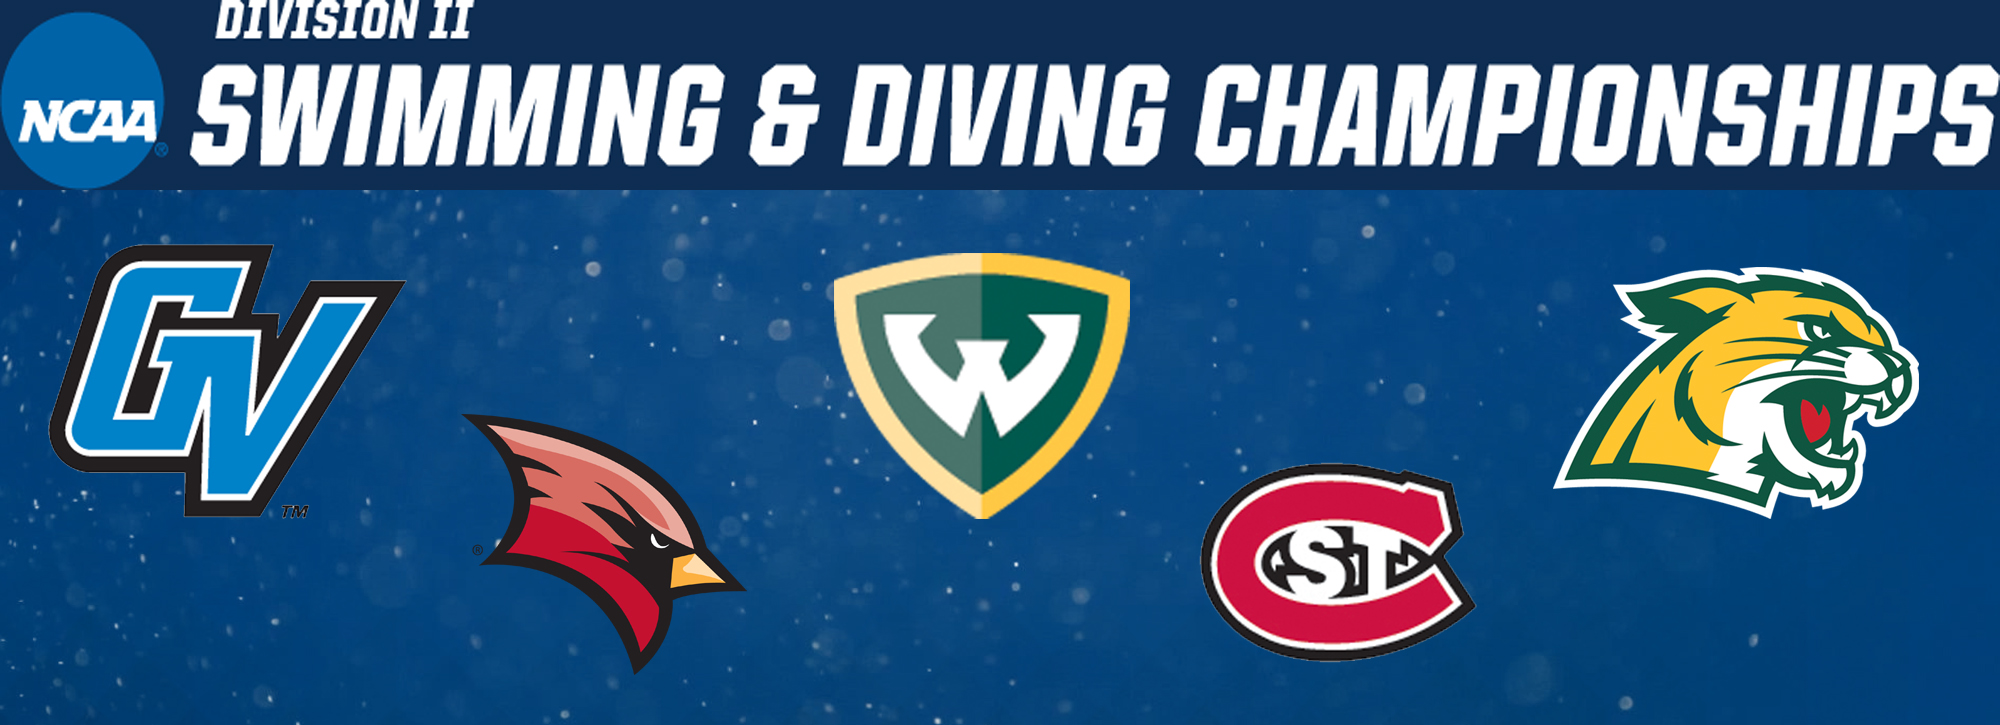 2019 NCAA Swimming & Diving Championships begin today in Indianapolis